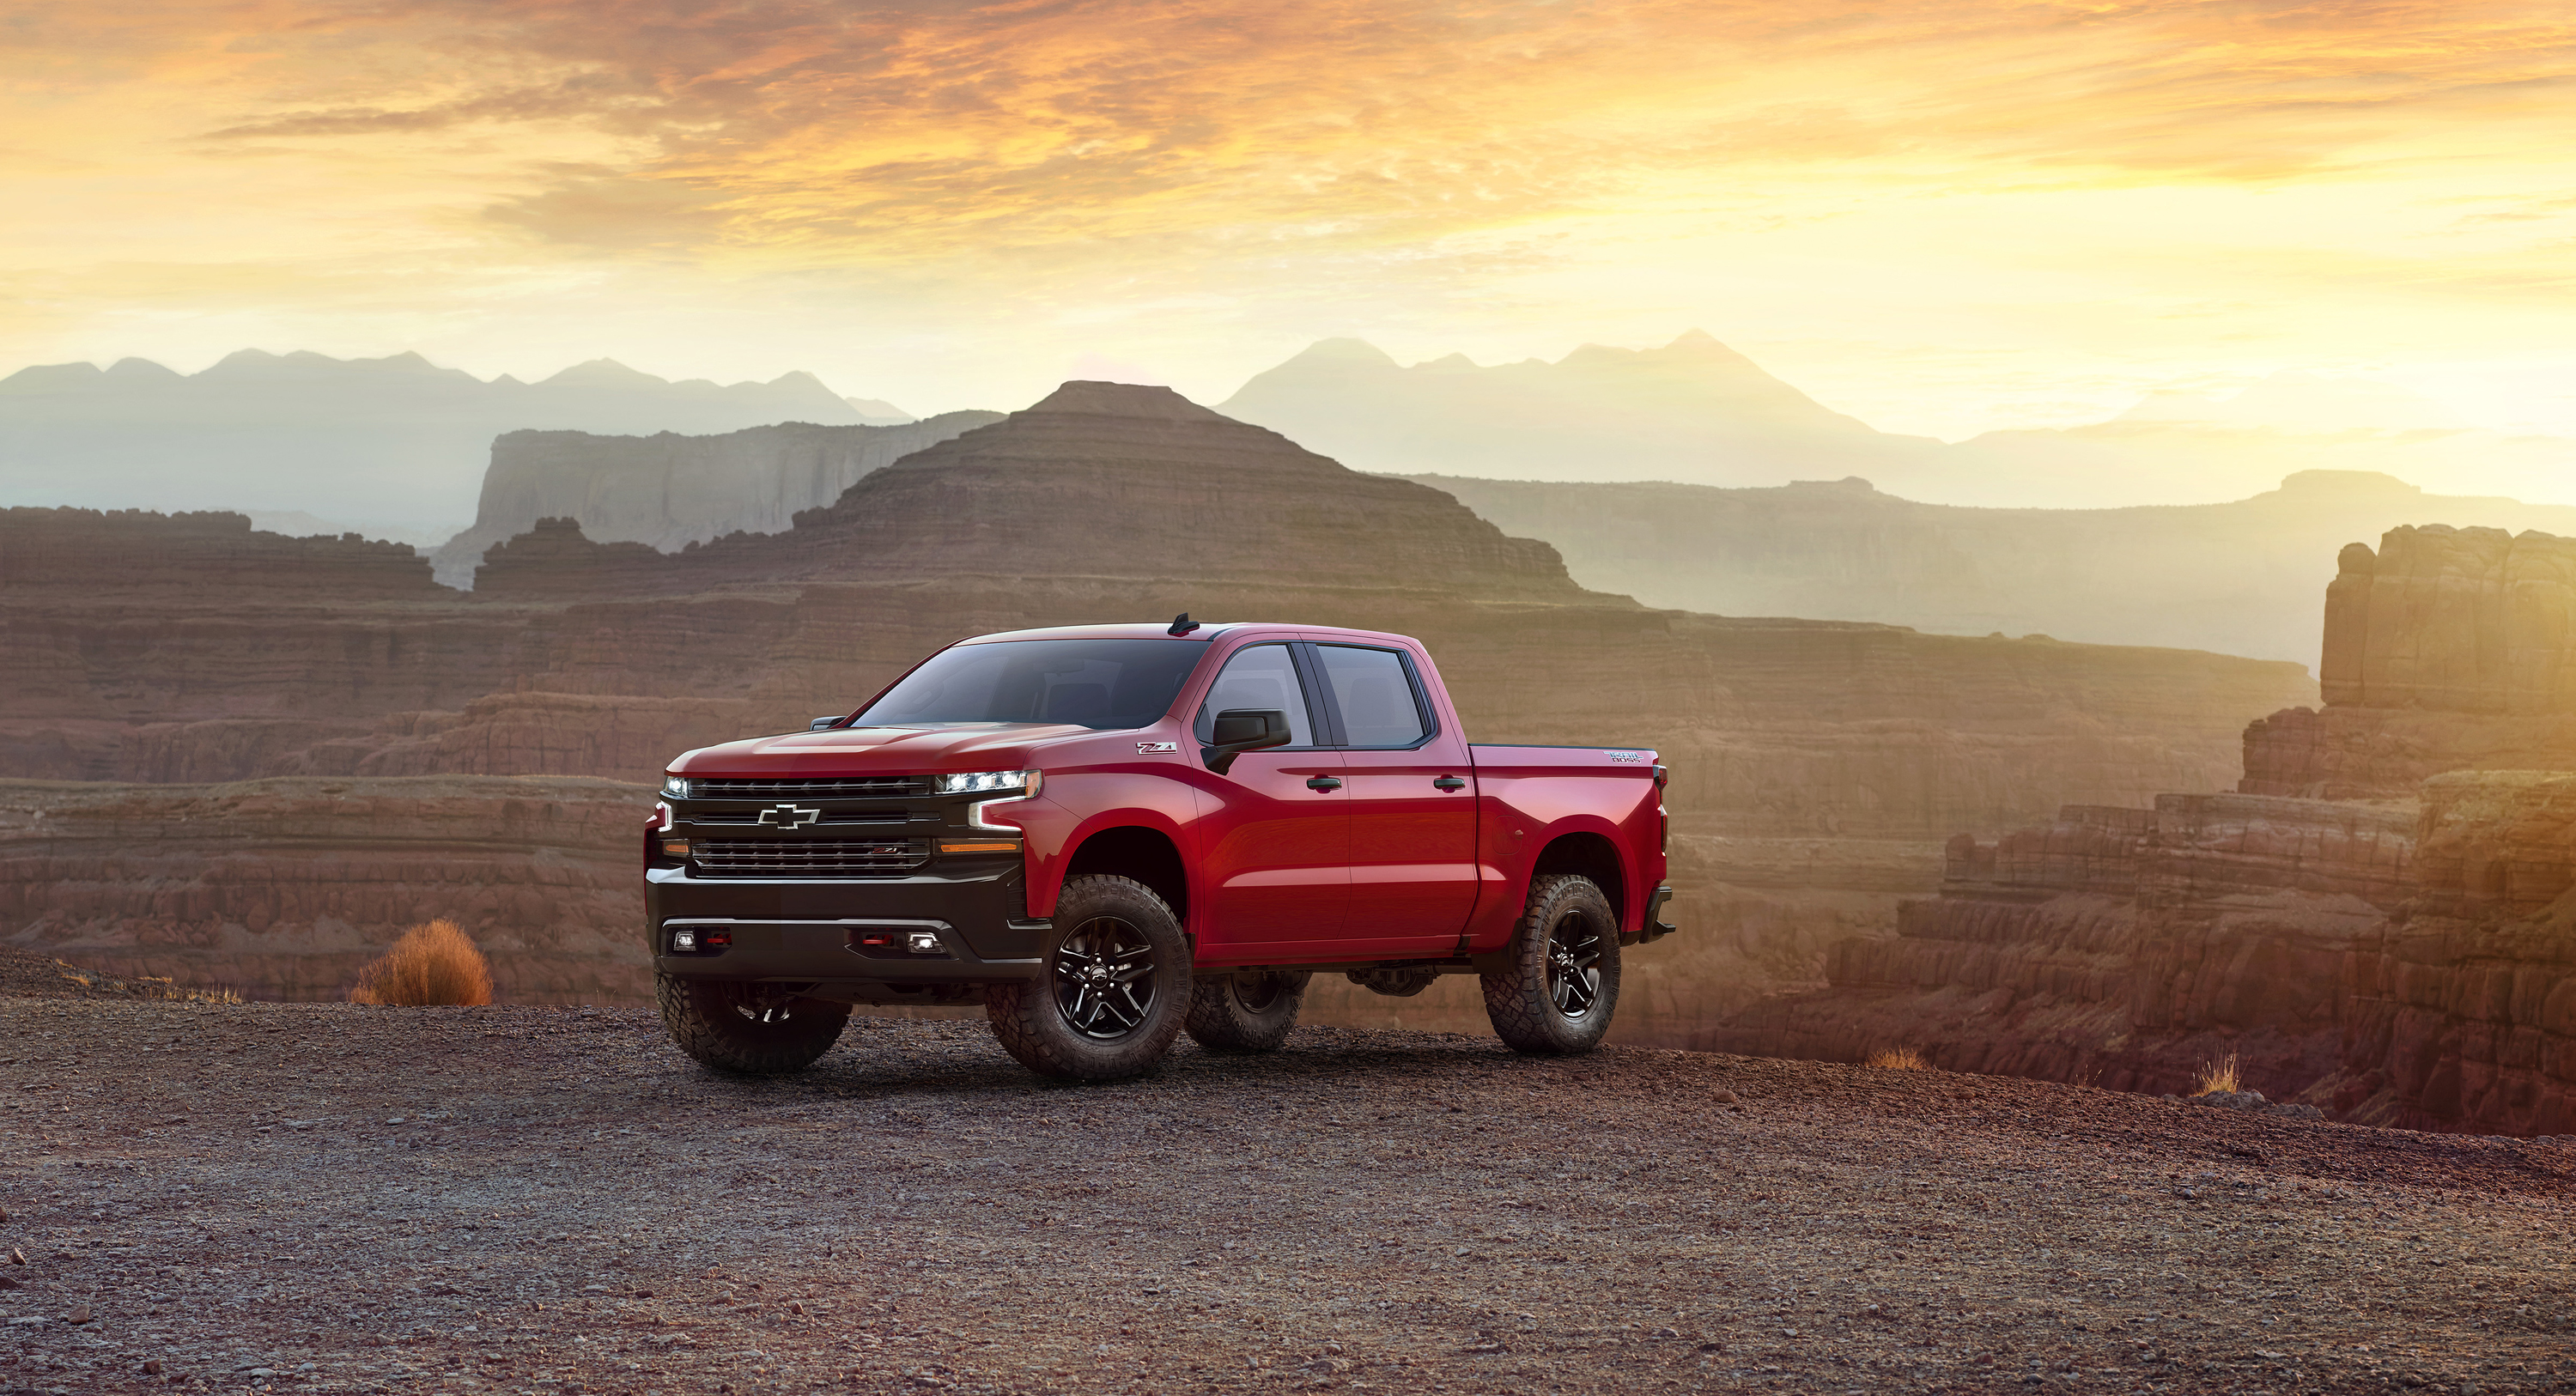 The 2019 Silverado S 3 0 Liter Duramax Is Chevy S First I 6